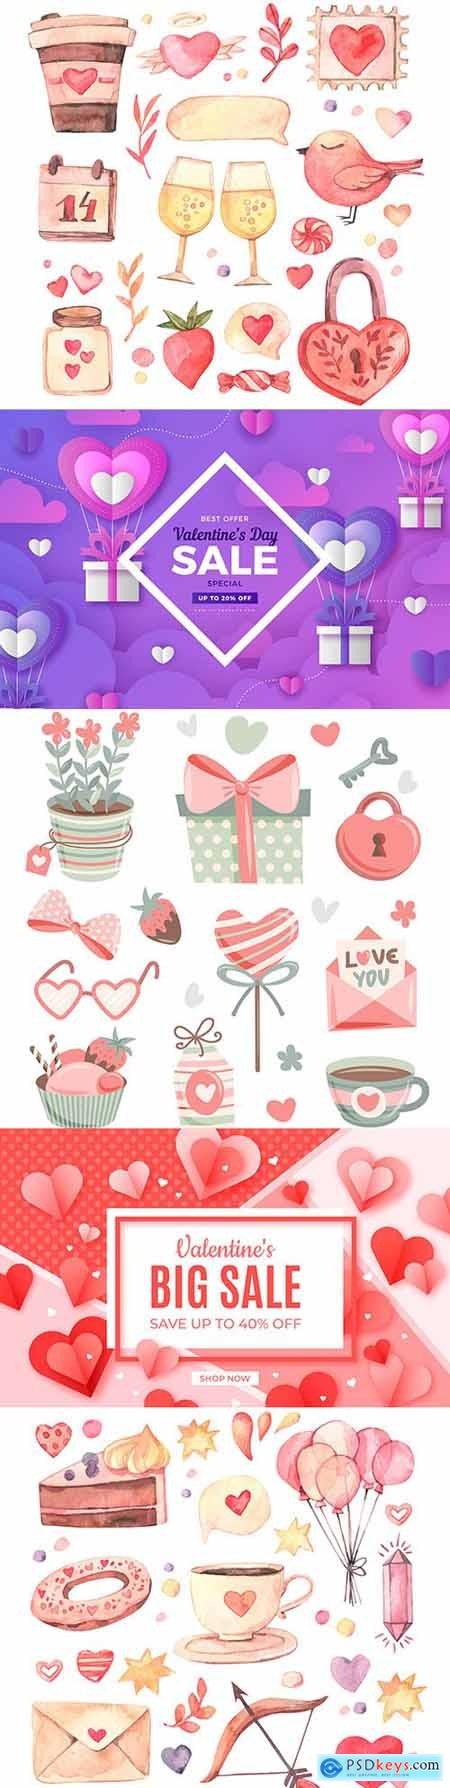 Valentines Day design watercolor romantic elements collection